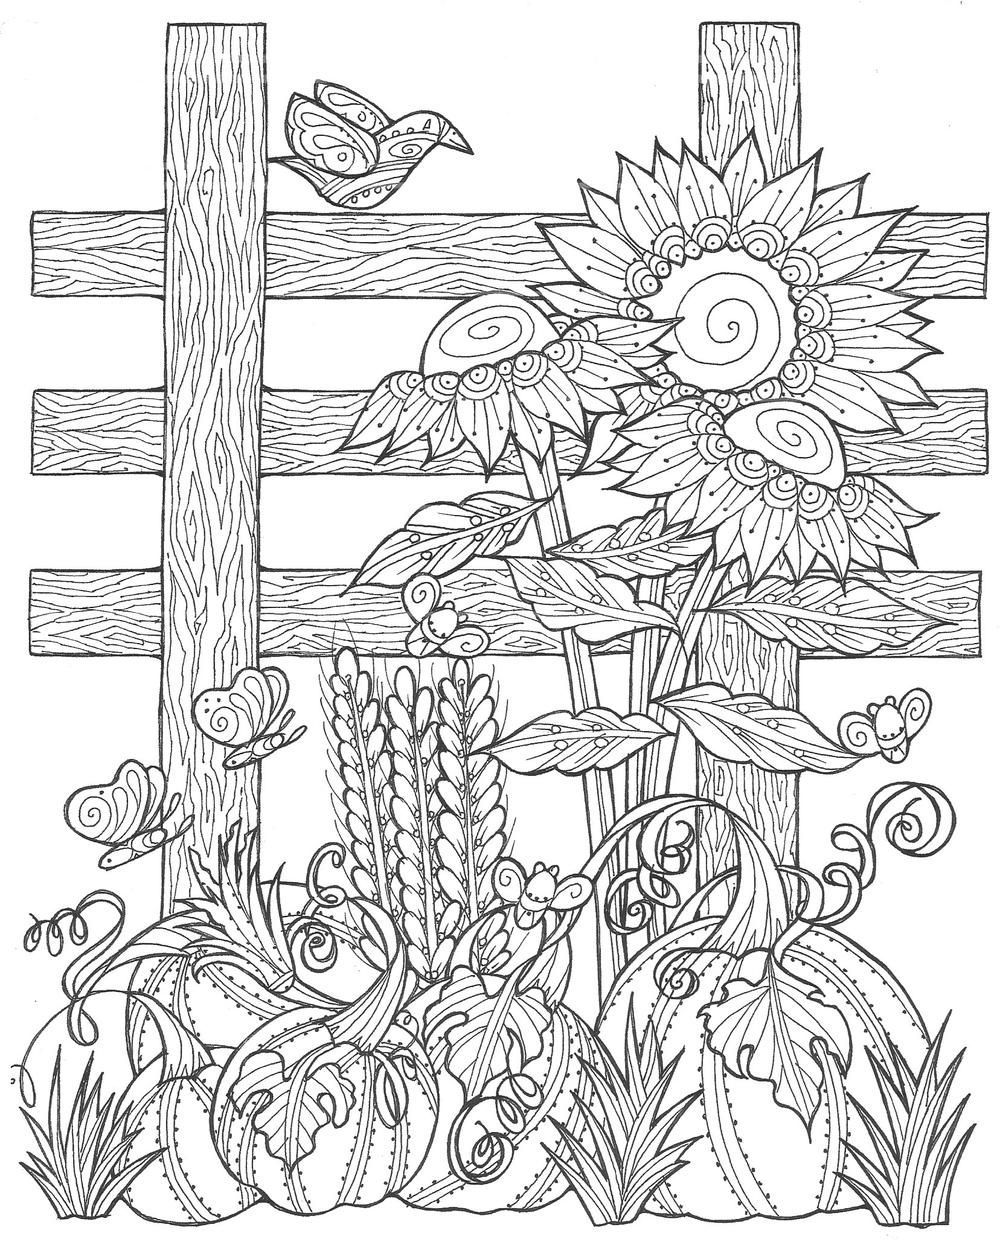 coloring pictures fall adorable fall coloring pages for children activity shelter fall pictures coloring